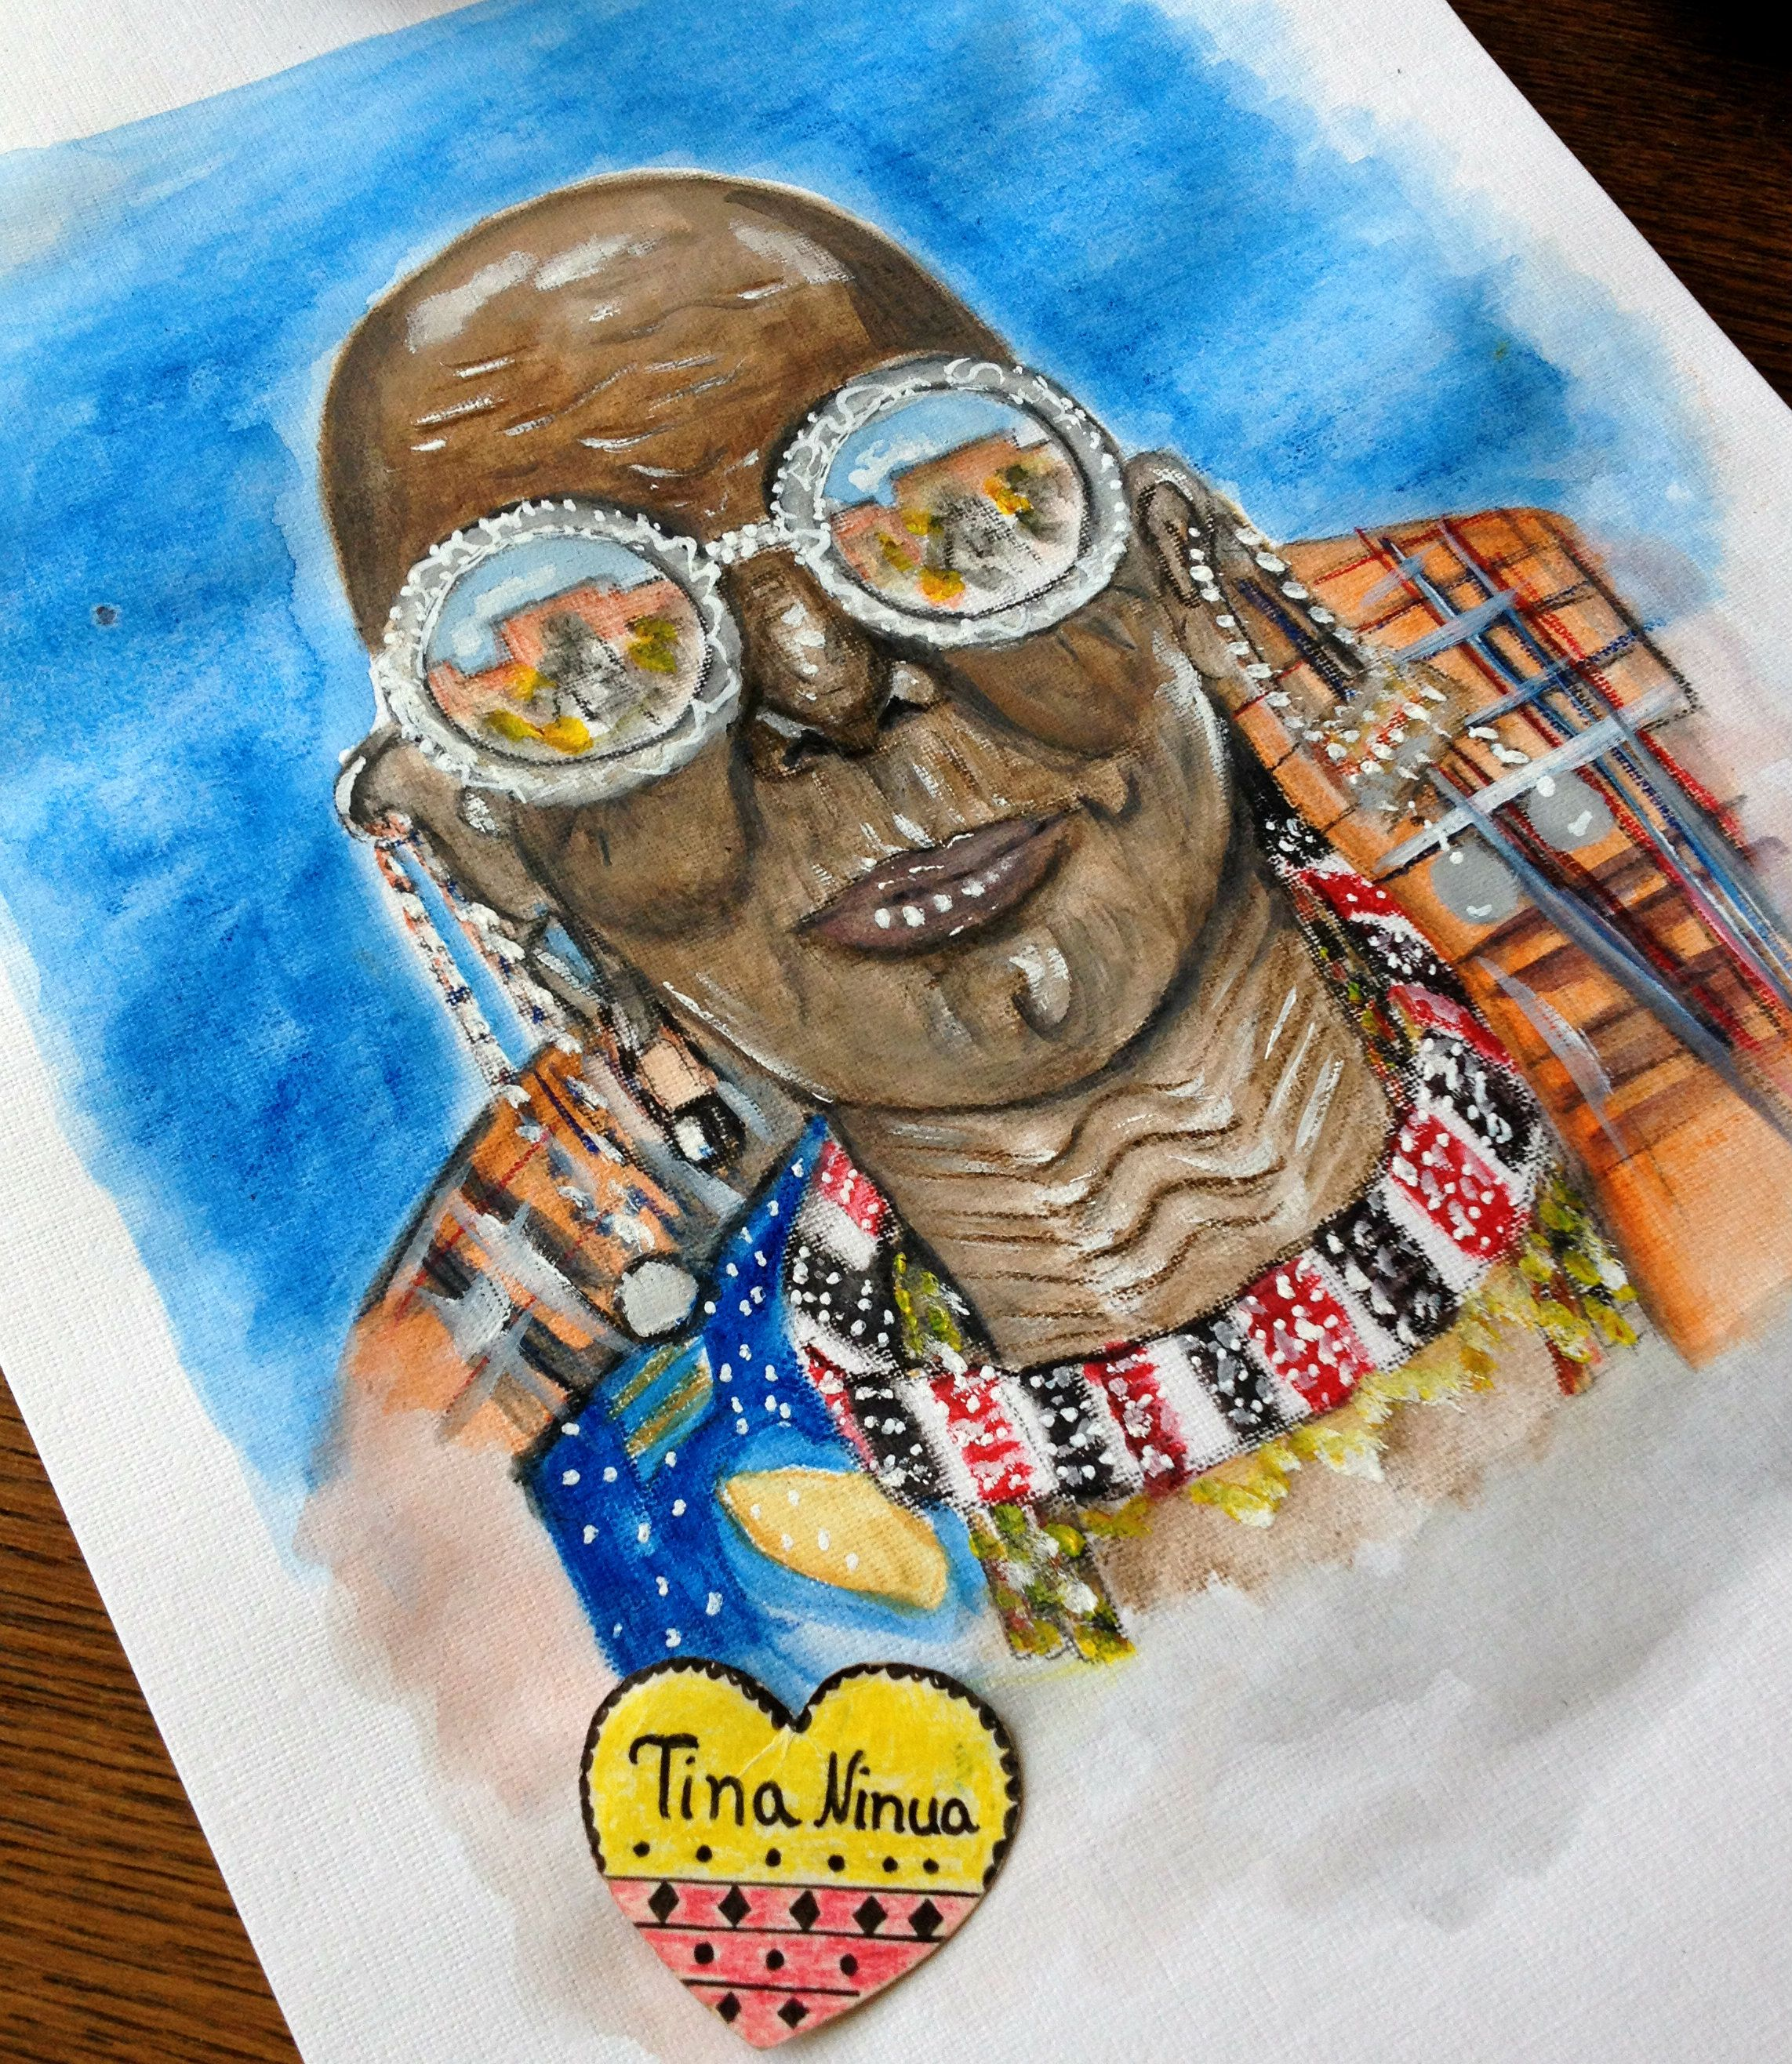 My Drawing #Afrostyle #Watercolor #ColoredPencil #Illustration #Art #Artist #Drawing #Painting